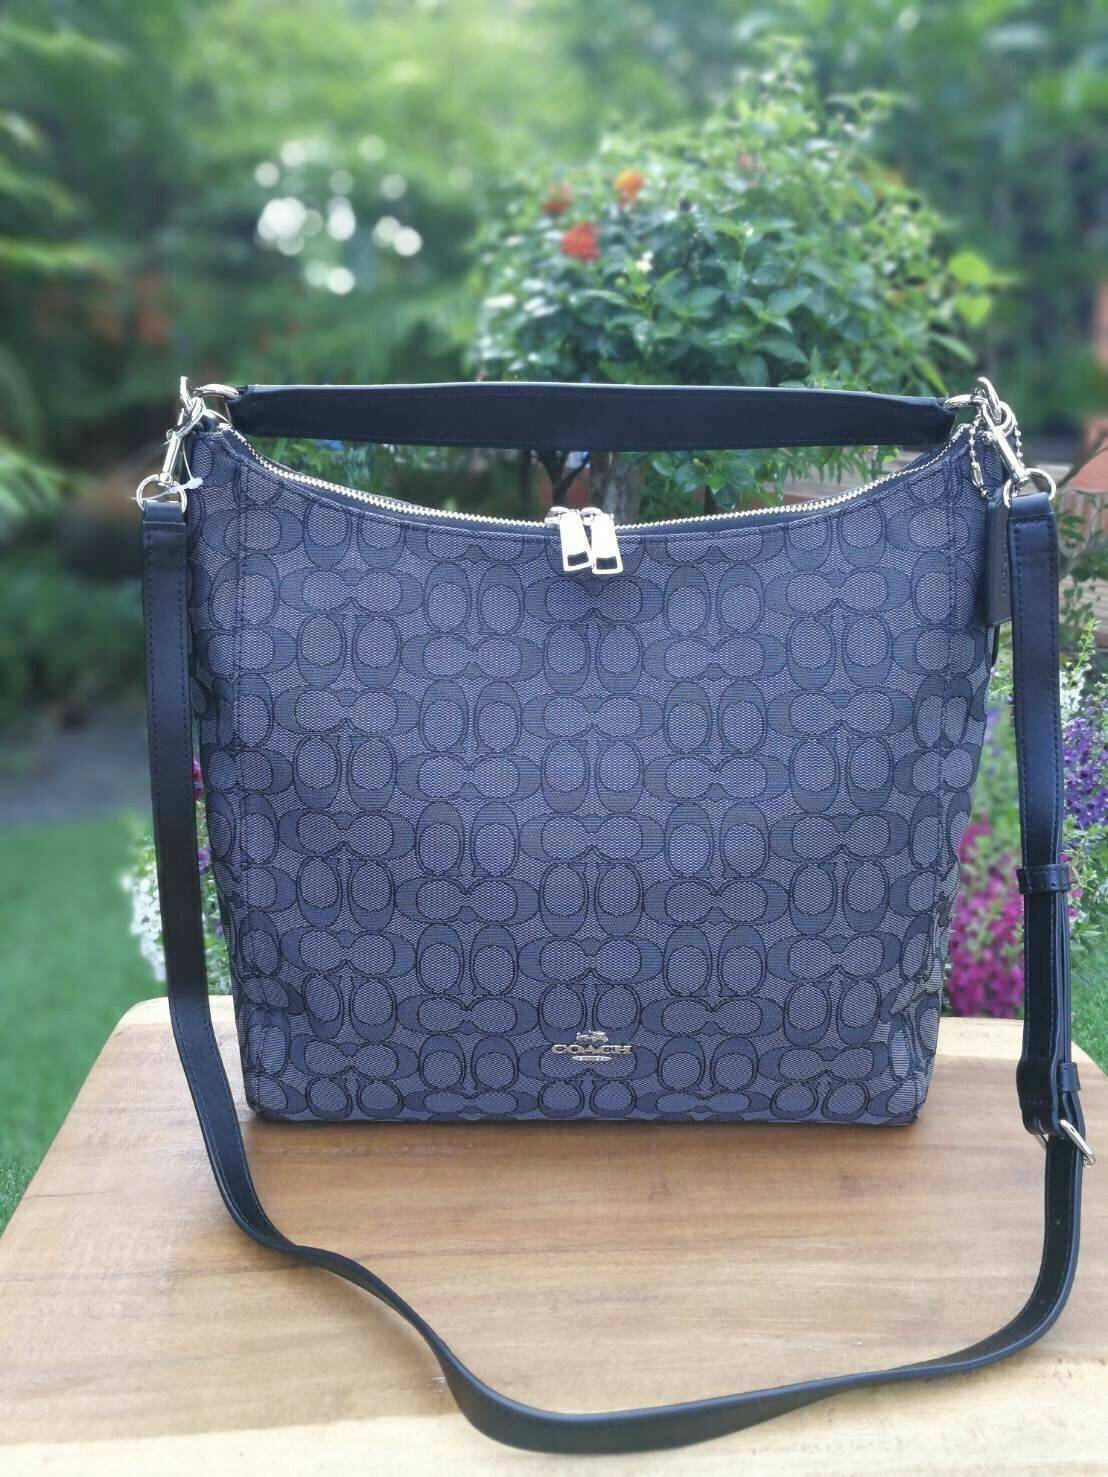 COACH F58327 CELESTE CONVERTIBLE HOBO IN OUTLINE SIGNATURE แท้ พร้อมส่ง